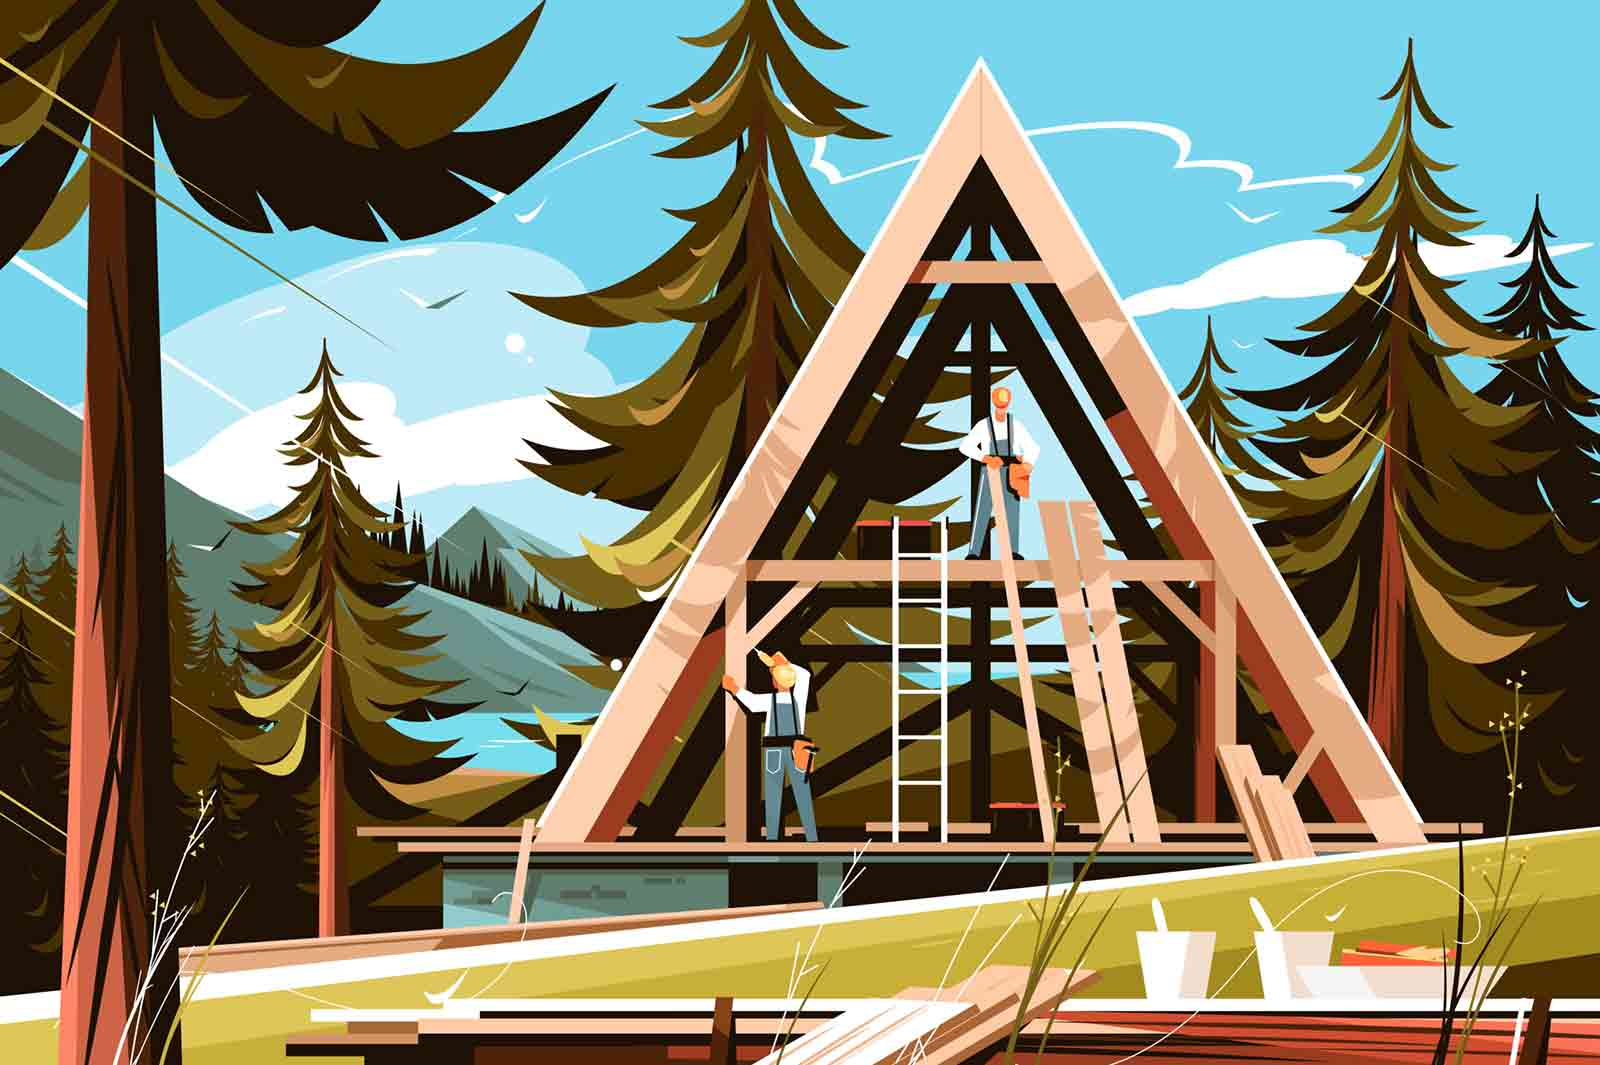 Home construction in picturesque place vector illustration. Builders in helmet and special robes building two-storied wooden house in pine forest flat style concept